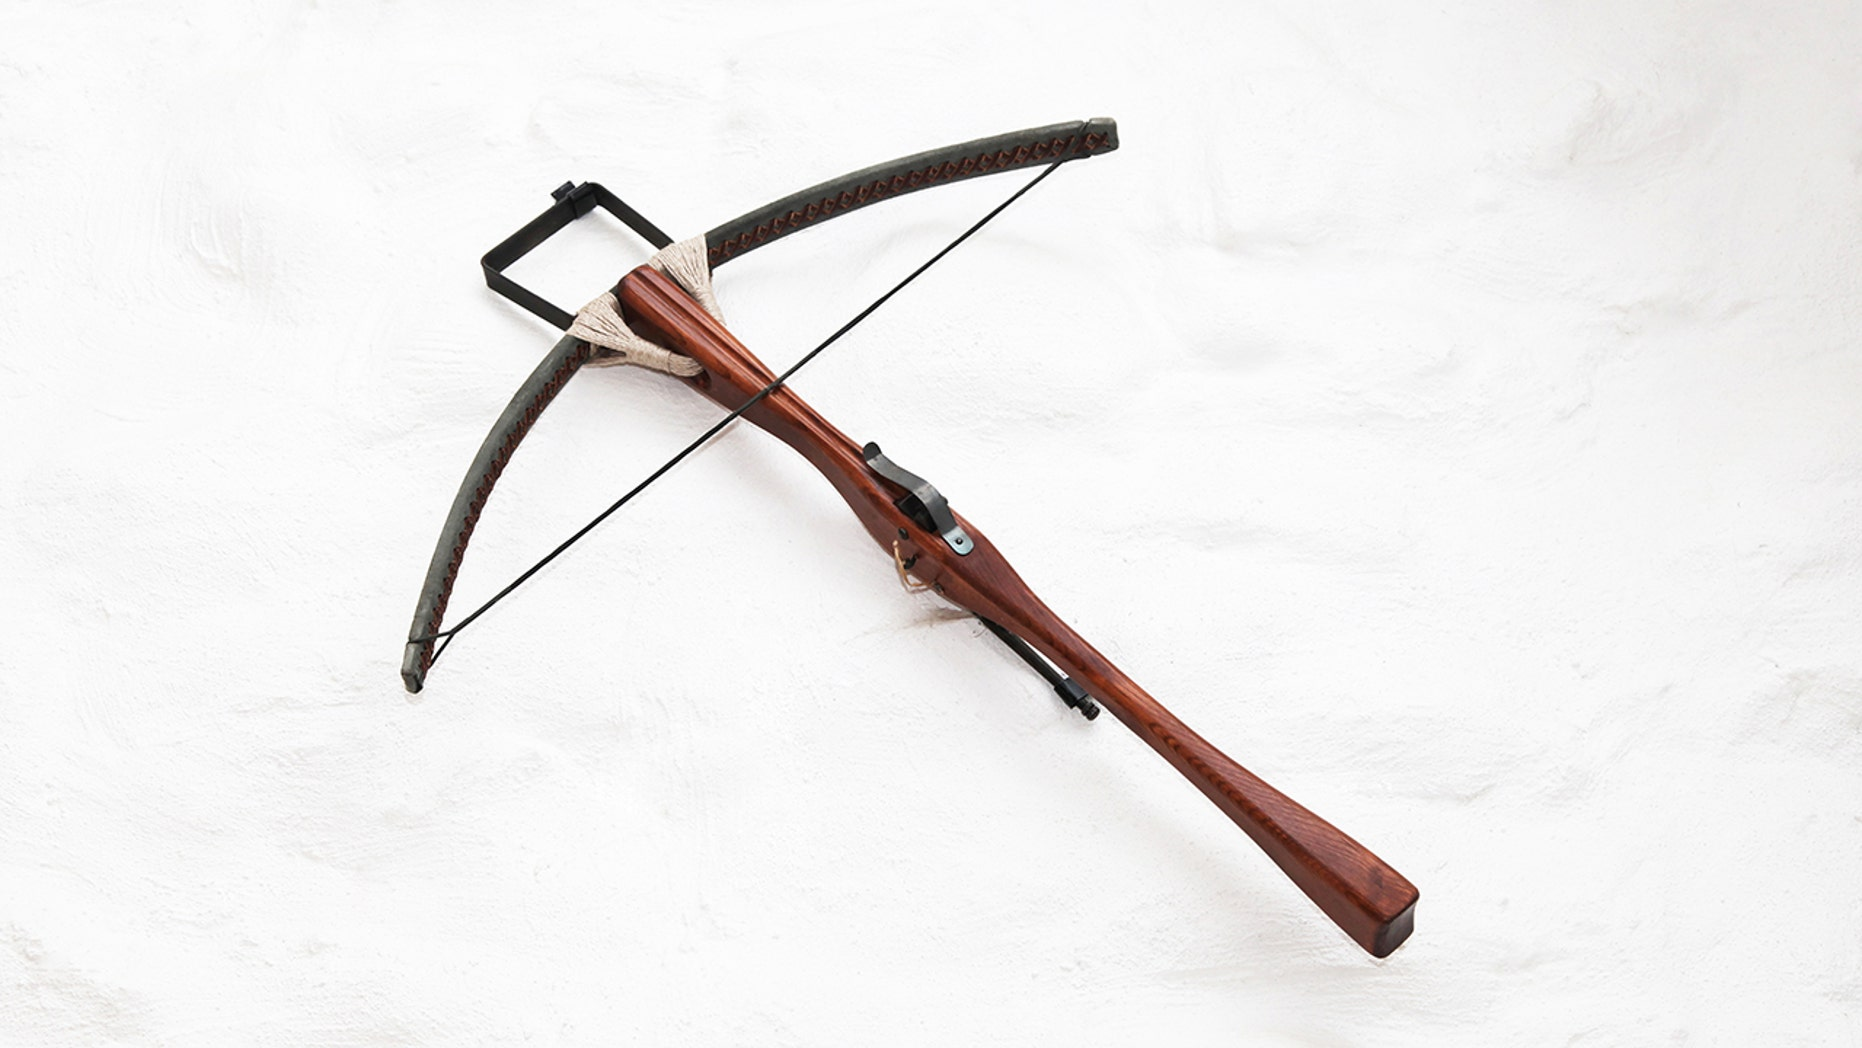 An antique crossbow. Police are investigating the deaths of three hotel guests after they were found dead with crossbow bolts in them and two crossbows nearby.